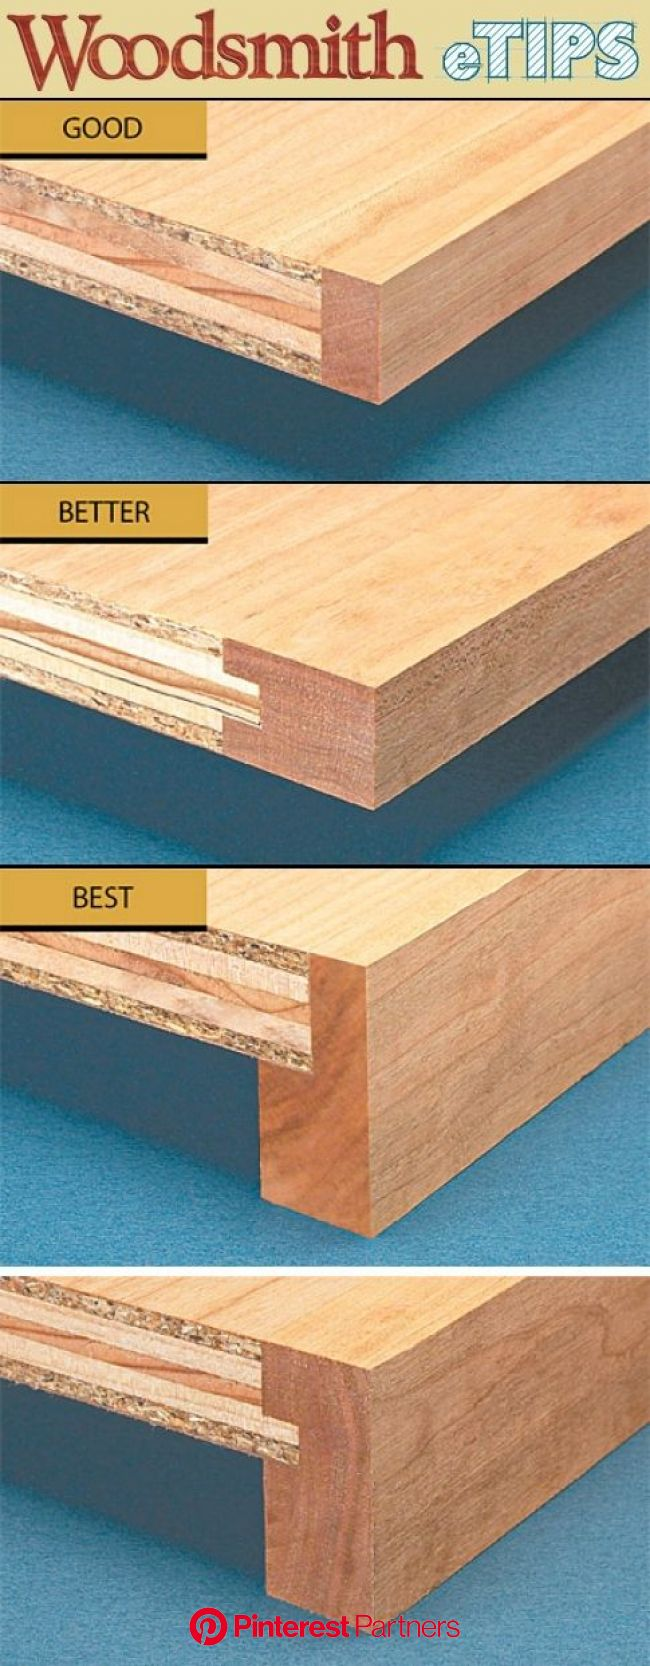 Arts And Crafts Style Shelves Diy Woodworking Woodworking Techniques Woodworking Tips Wood Decor 2019 2020